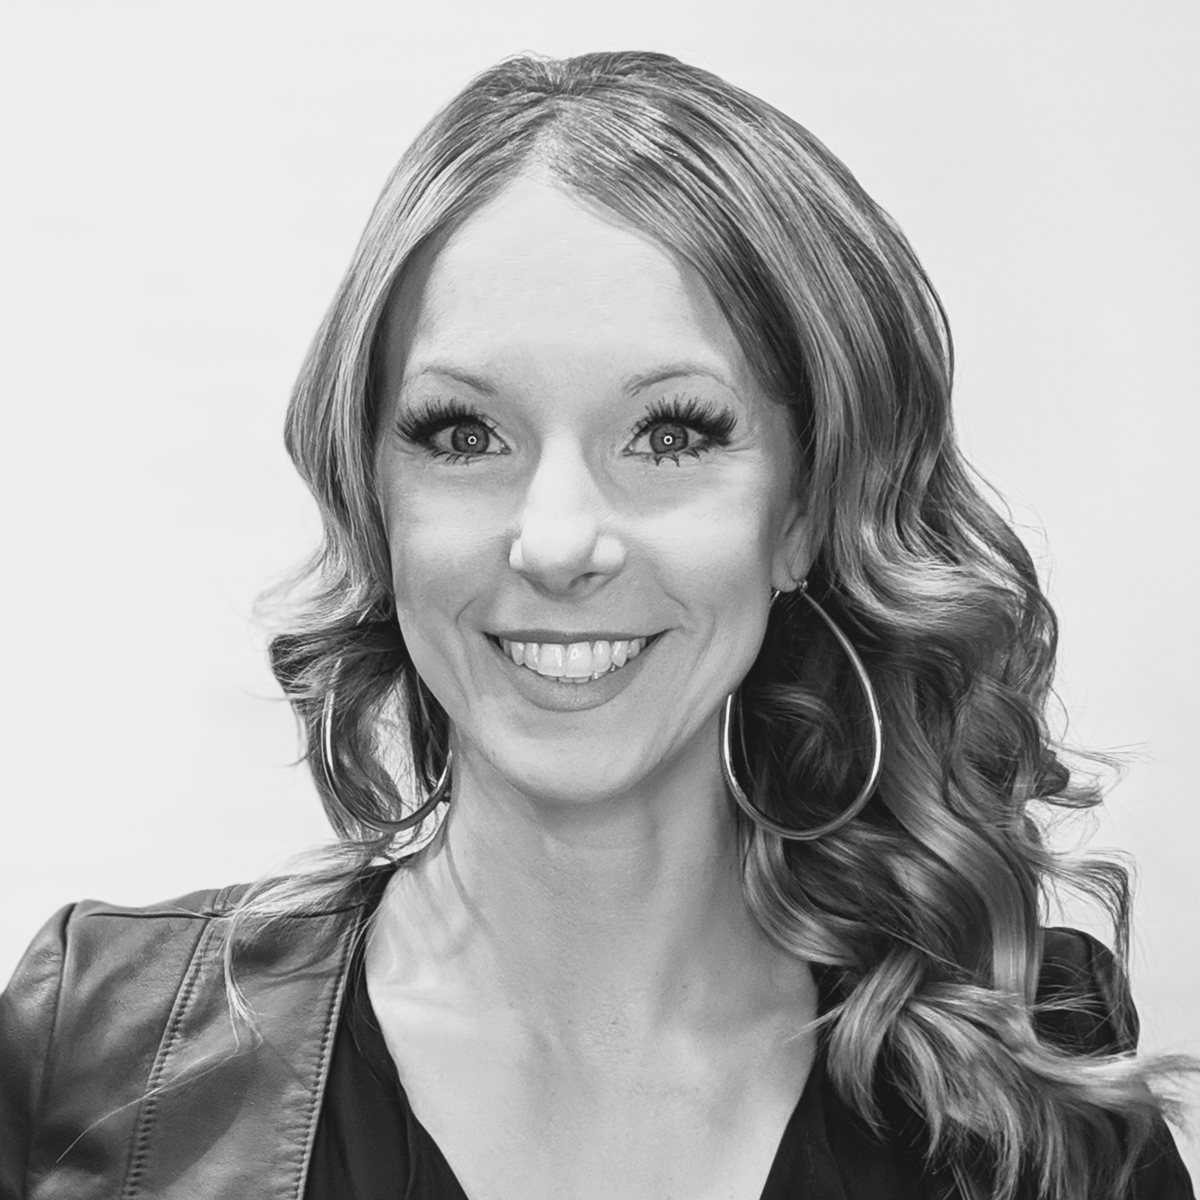 Team member Alysun of hairstyle inn saskatoon